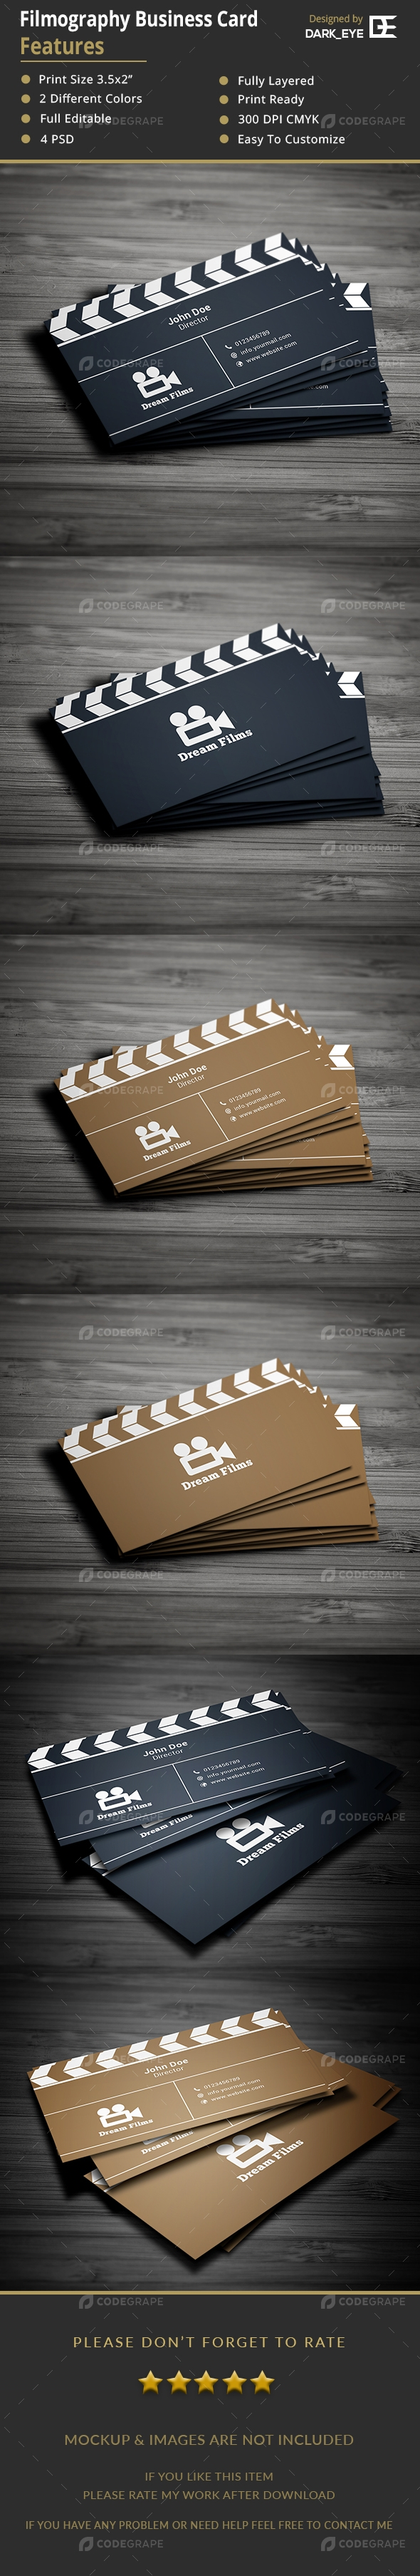 Filmography Business Card